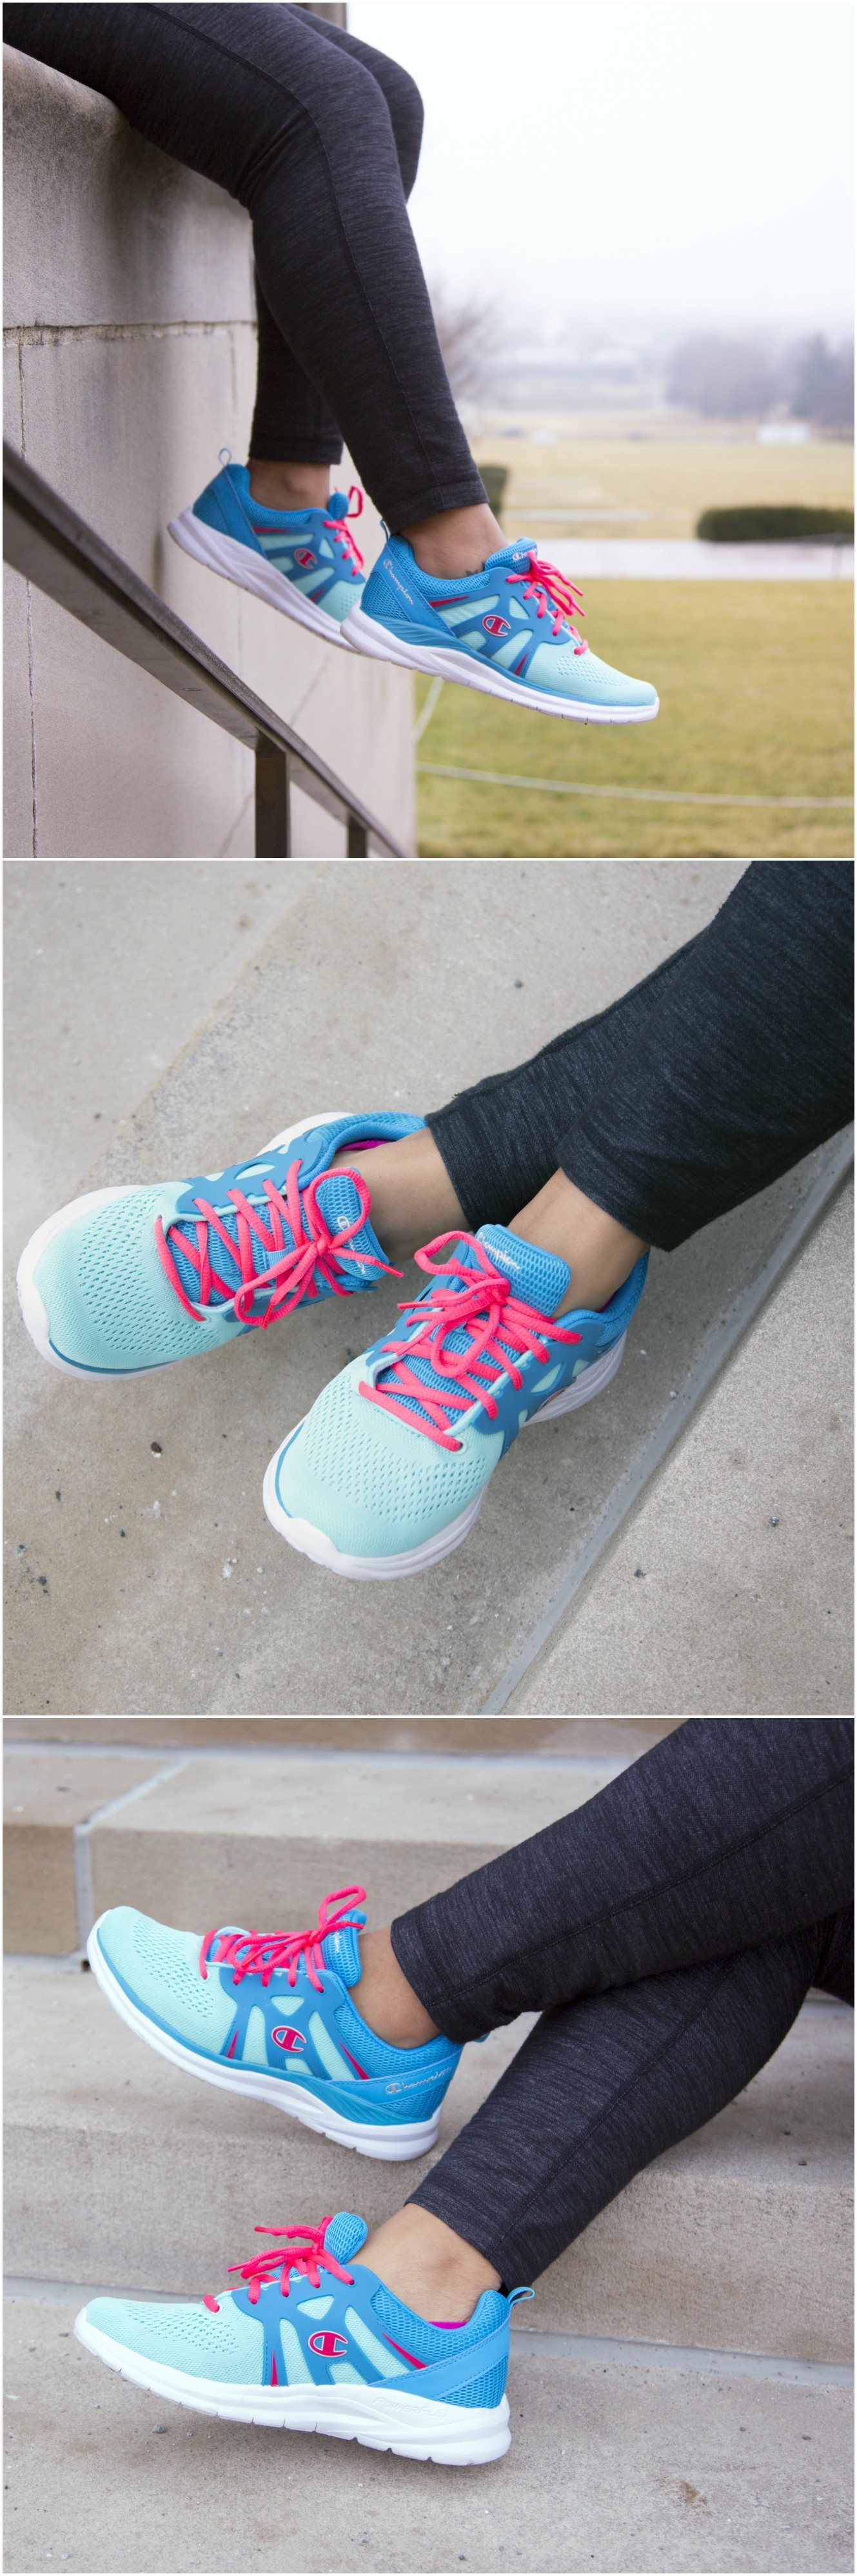 Lace up the Exhilarate Runner from Champion and enjoy Power Flex Technology.